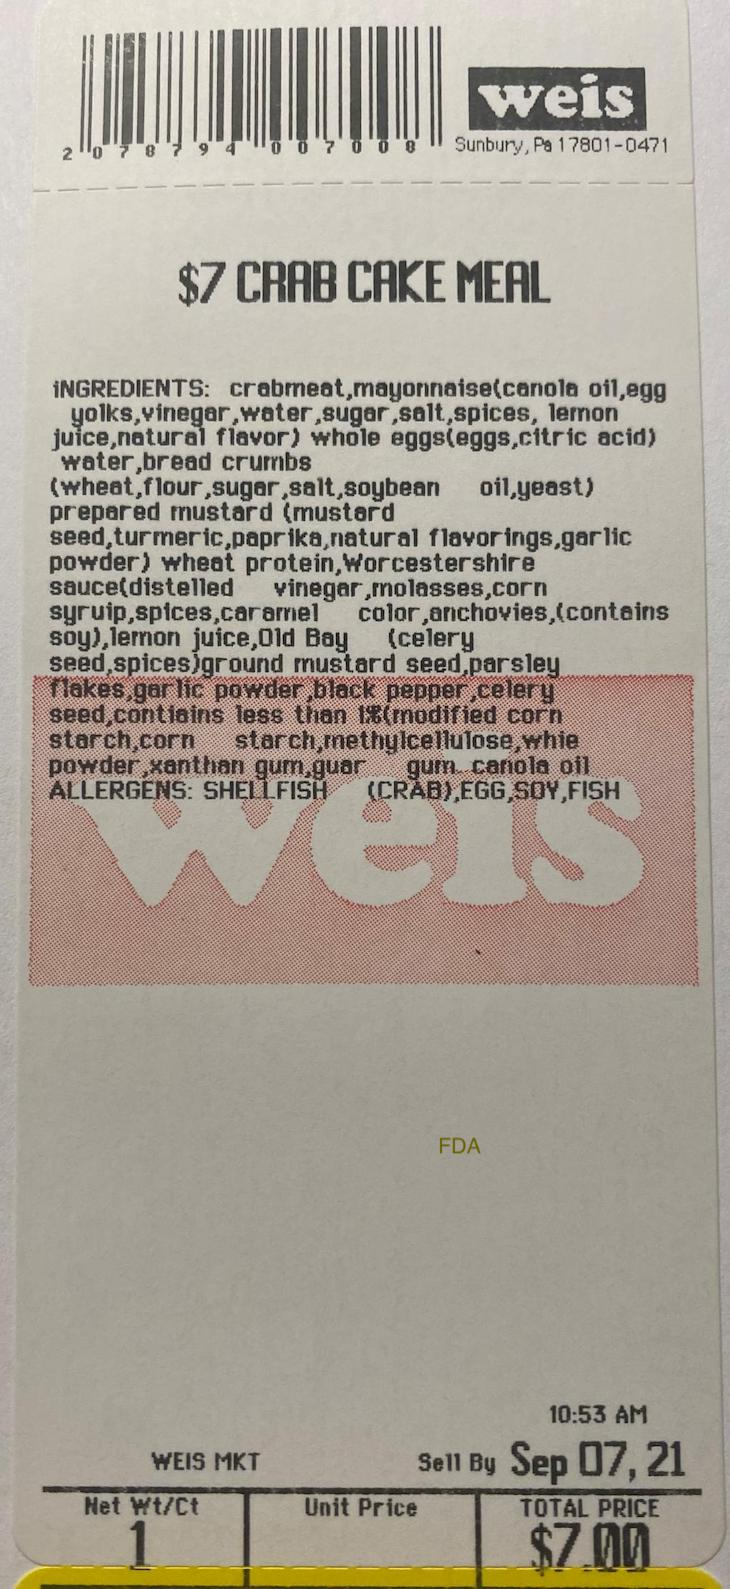 Weis Markets Crab Cake Meal Recalled For Undeclared Milk